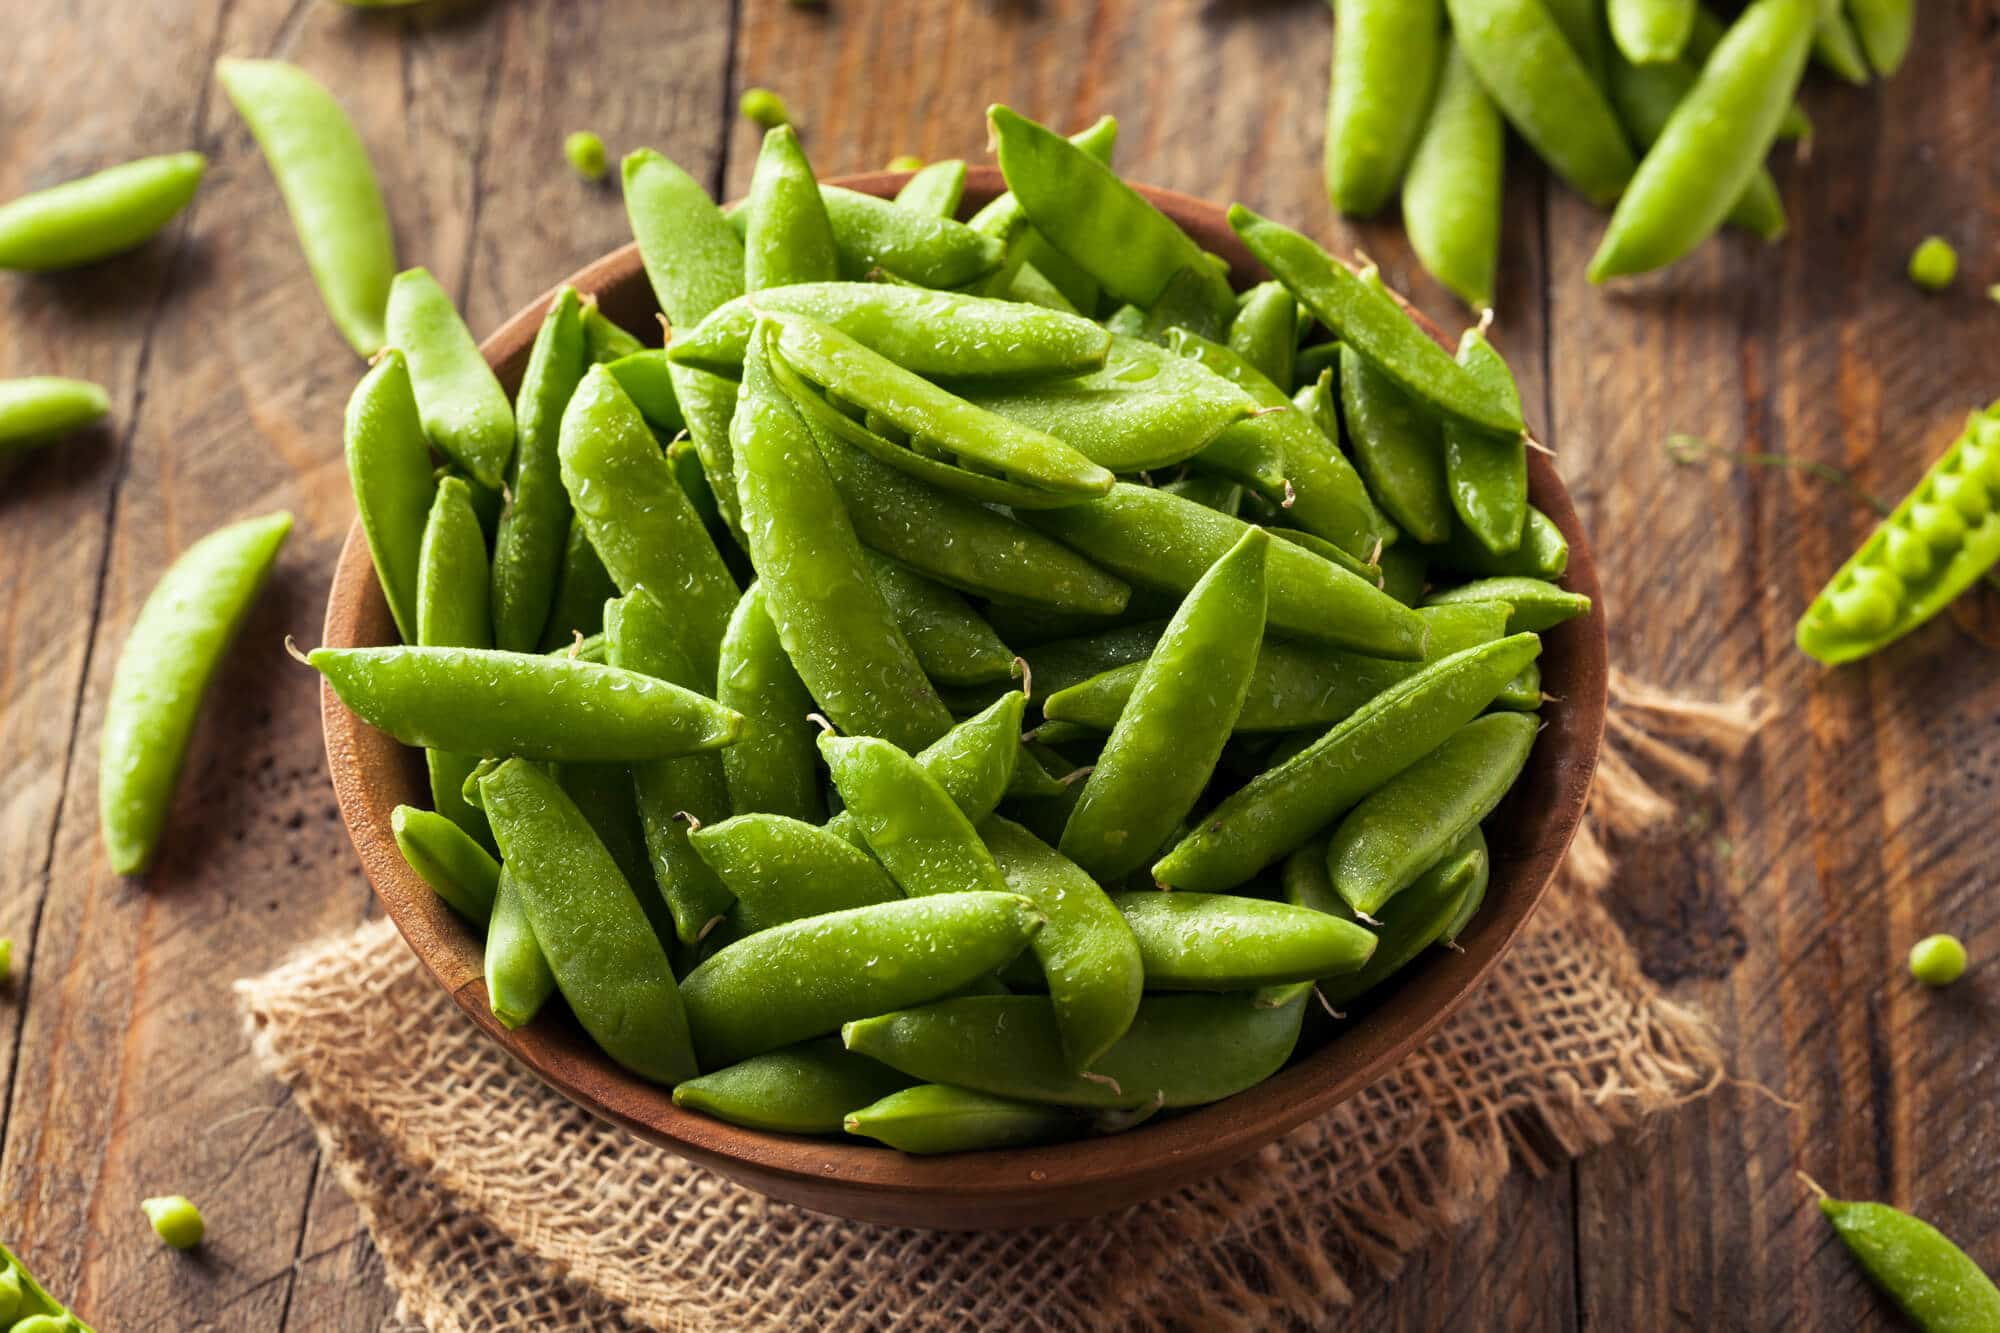 snap peas in a wooden bowl on a wooden countertop